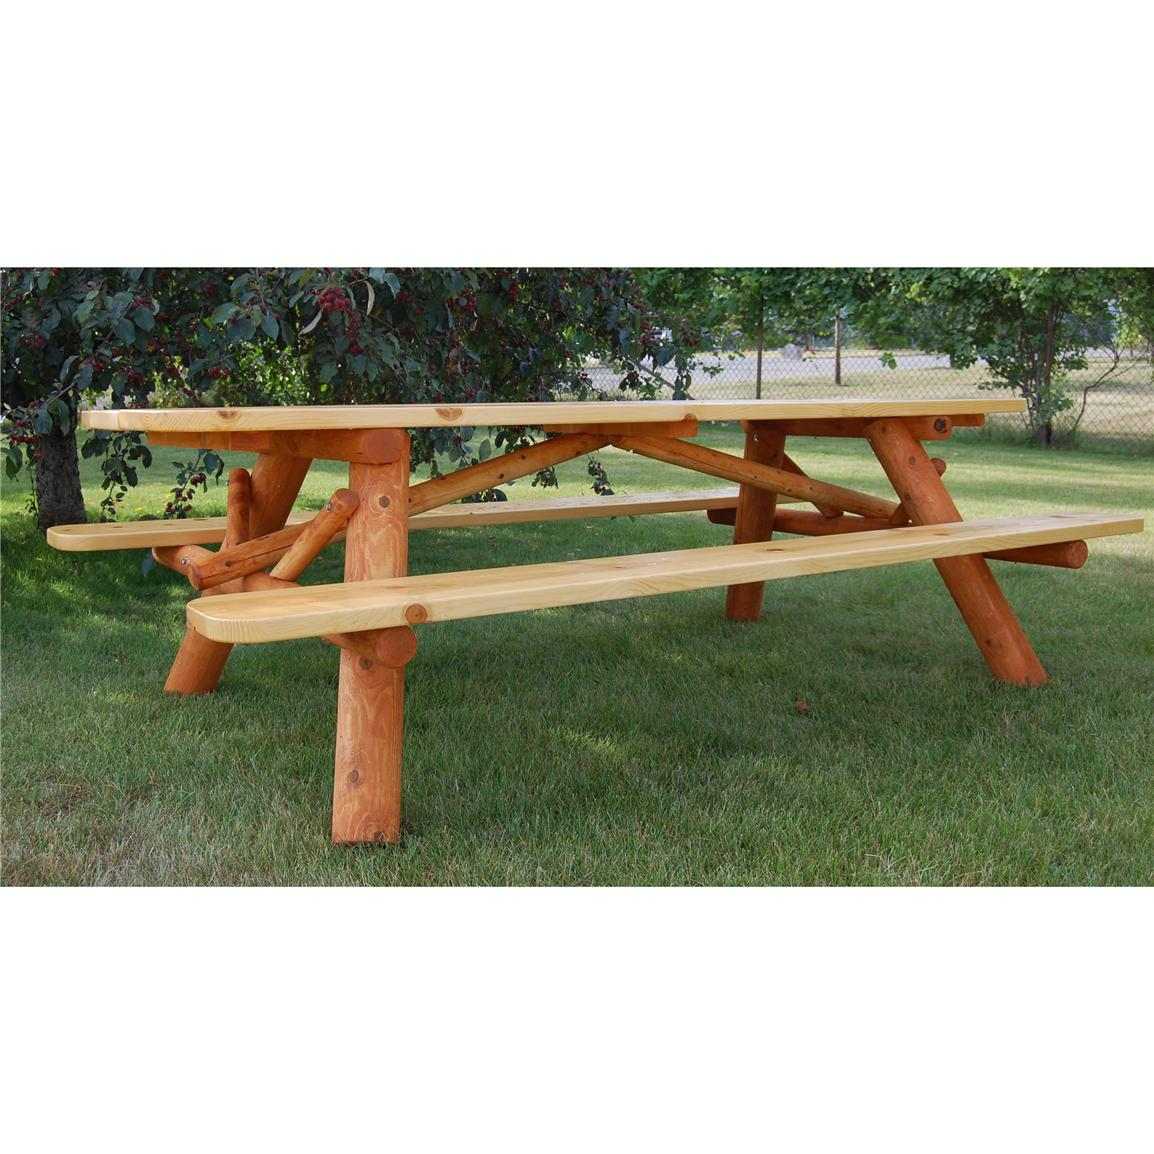 Moon Valley Cedar Works 7 foot Picnic Table